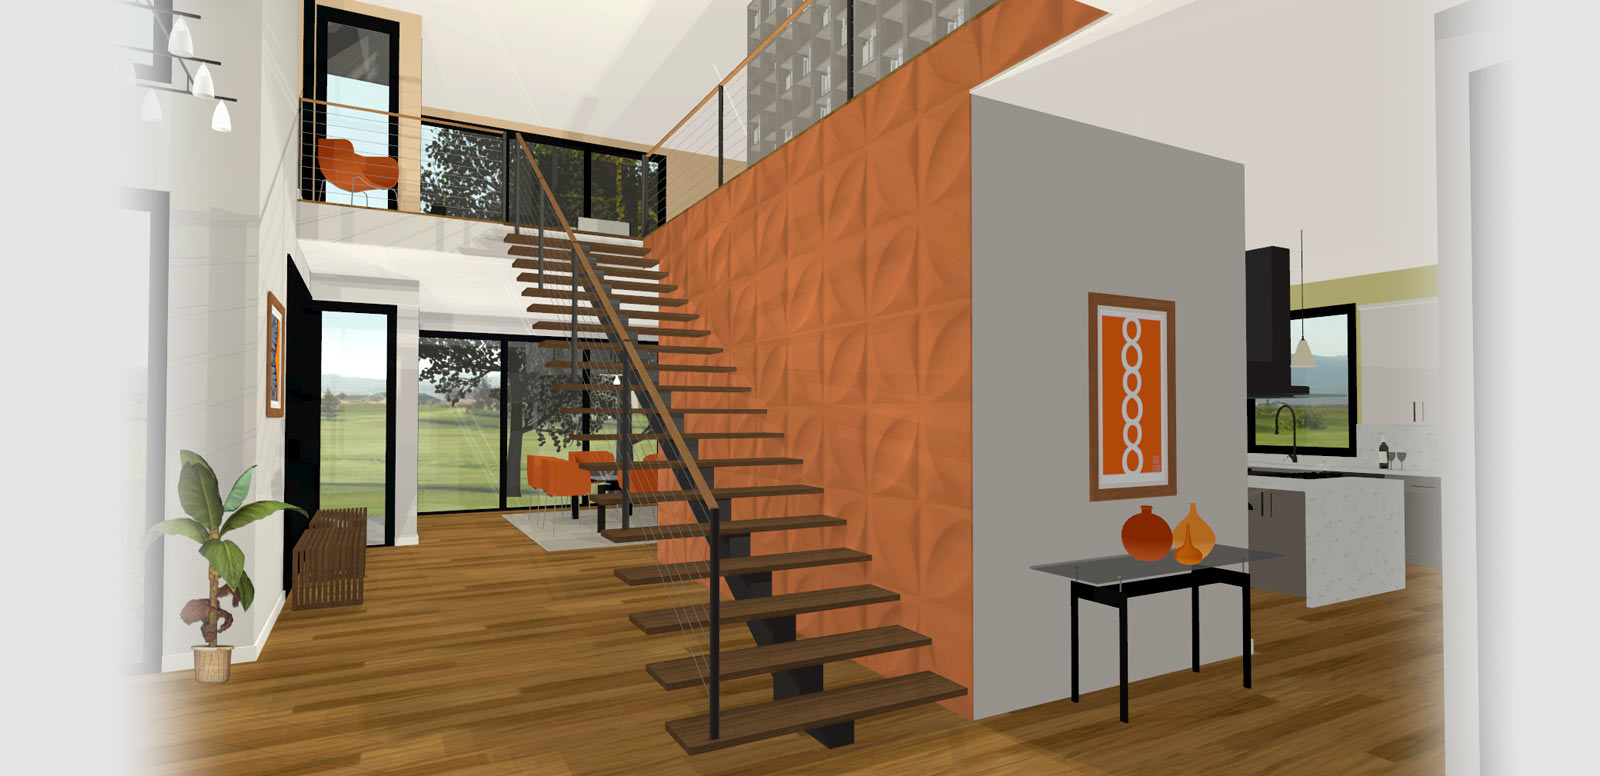 Home designer interior design software Program design interior 3d free